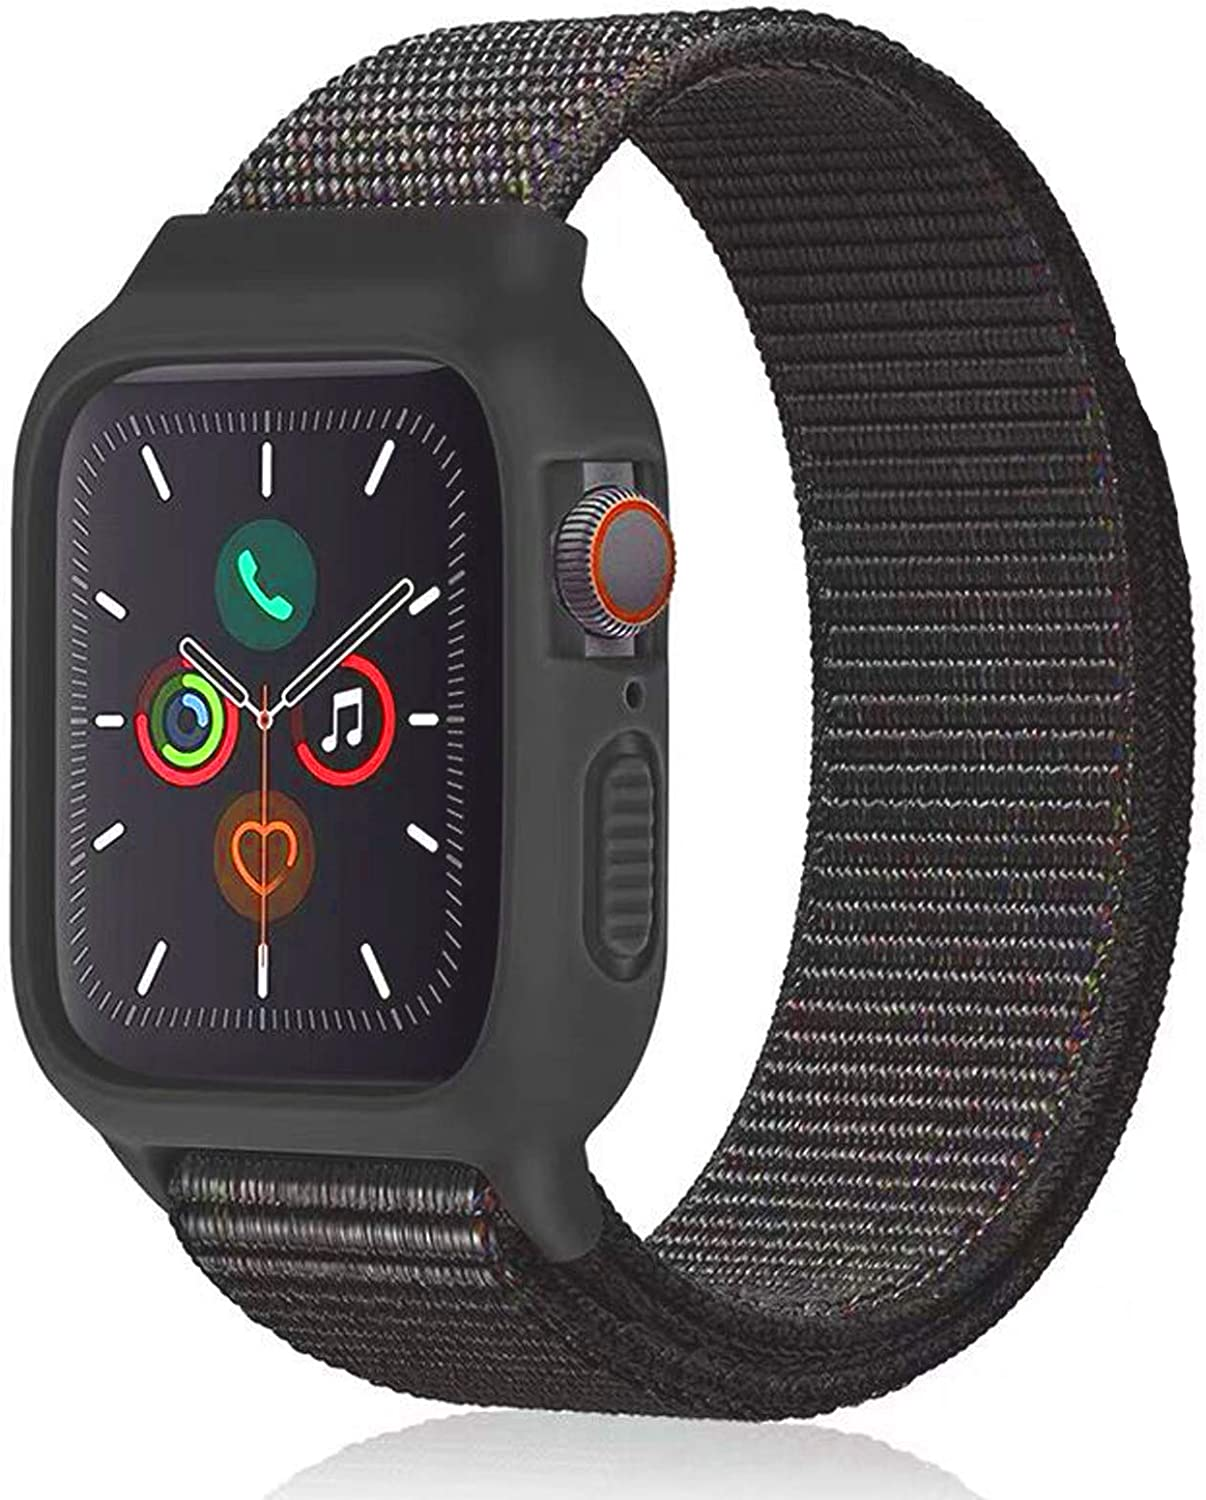 Nylon Sport Band with Case Compatible with Apple Watch Band 44mm 42mm 40mm 38mm, Protective Silicone Bumper Case with Nylon Sport Loop Strap for Series 6/5/4/3/SE for Kids Women Men, Black